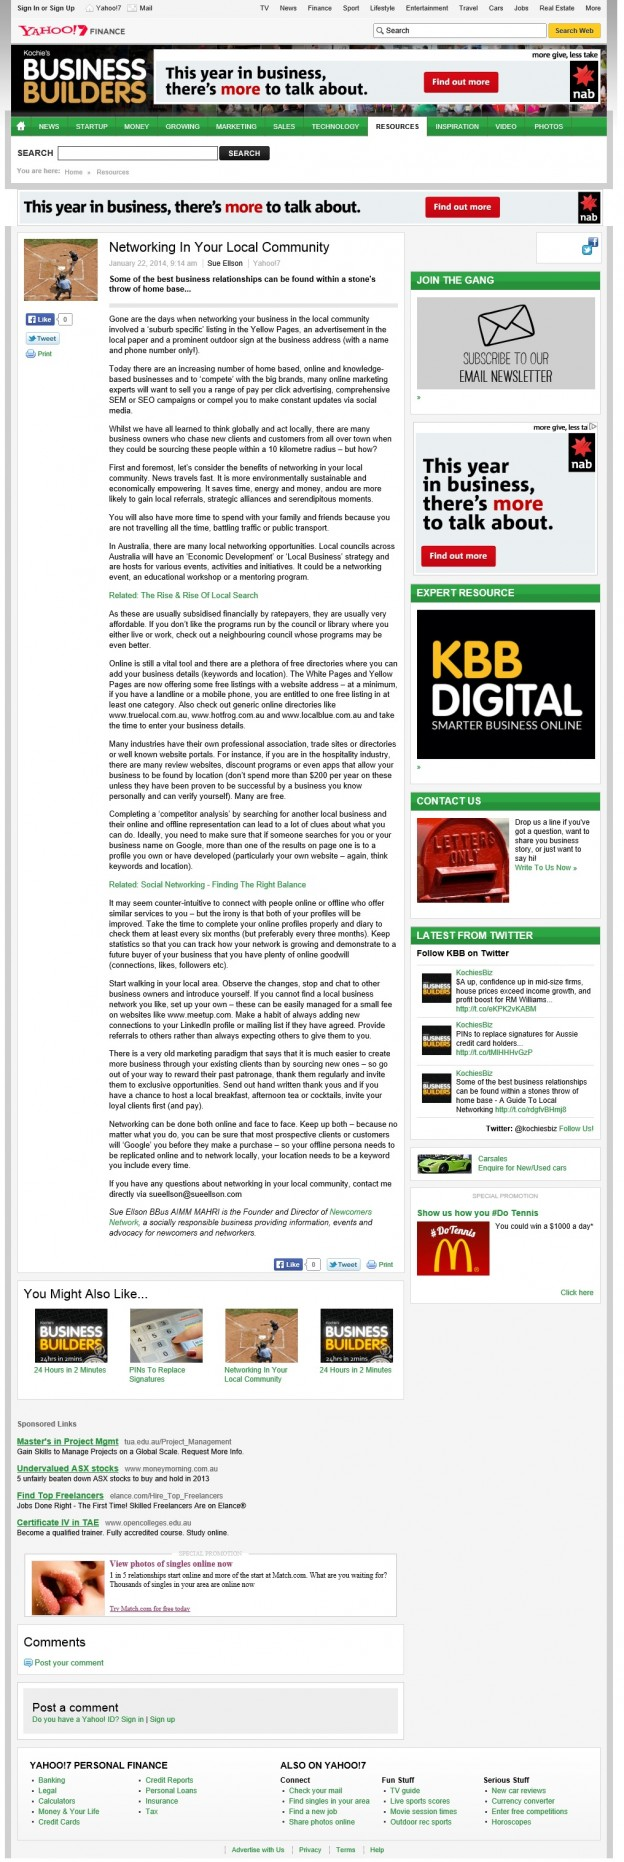 140122-Networking-in-your-local-community-Kochies-Business-Builders-624x1862